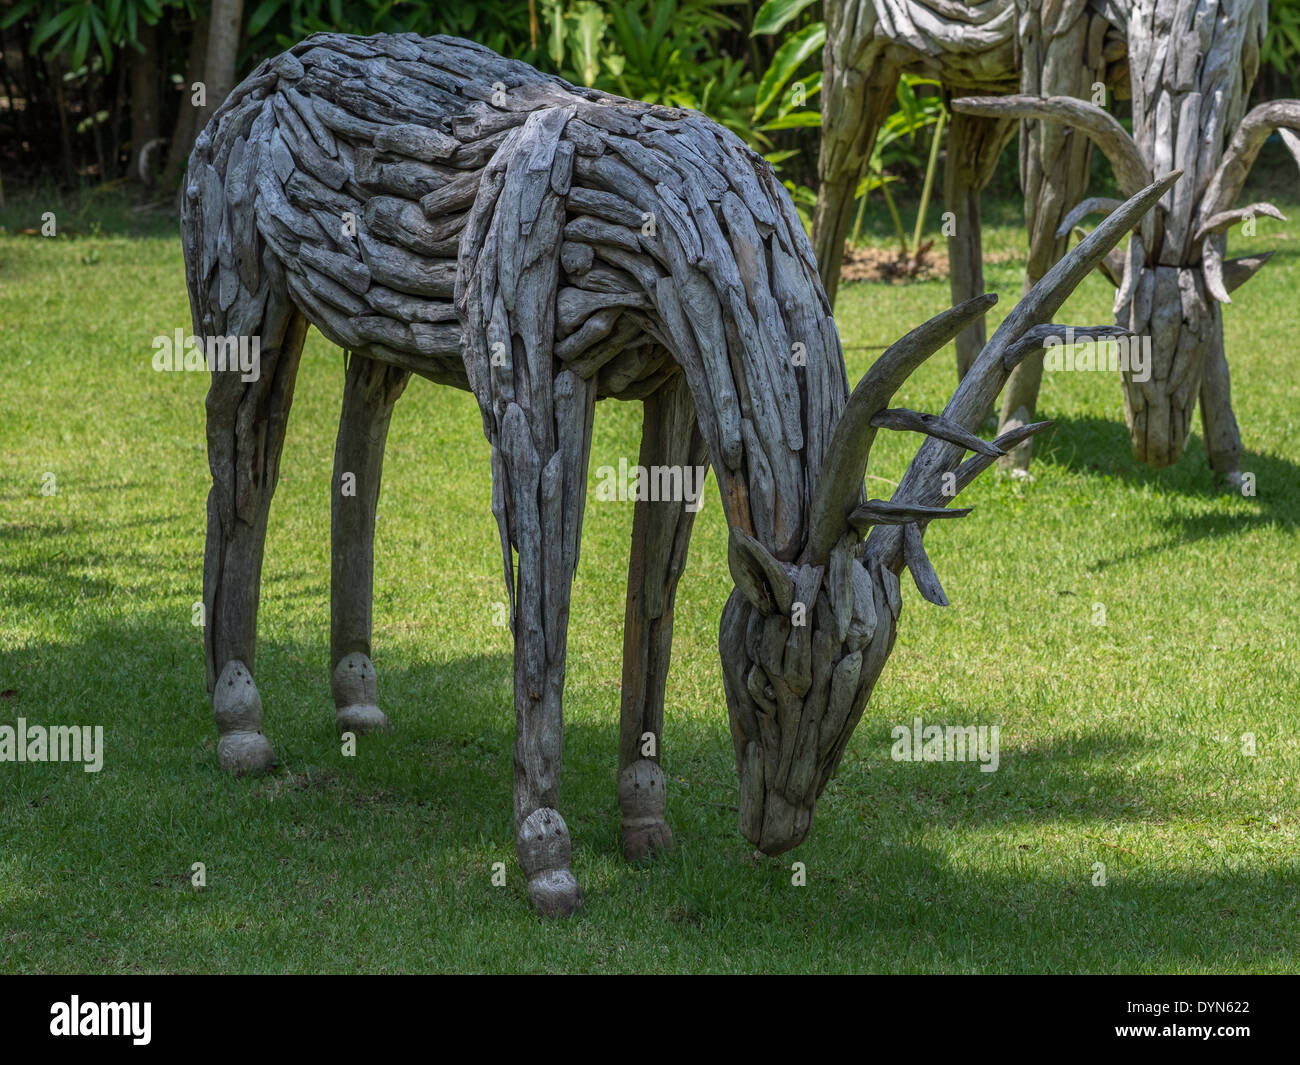 Delightful Rustic Deer Made From Old Wood Making A Great Garden Ornament